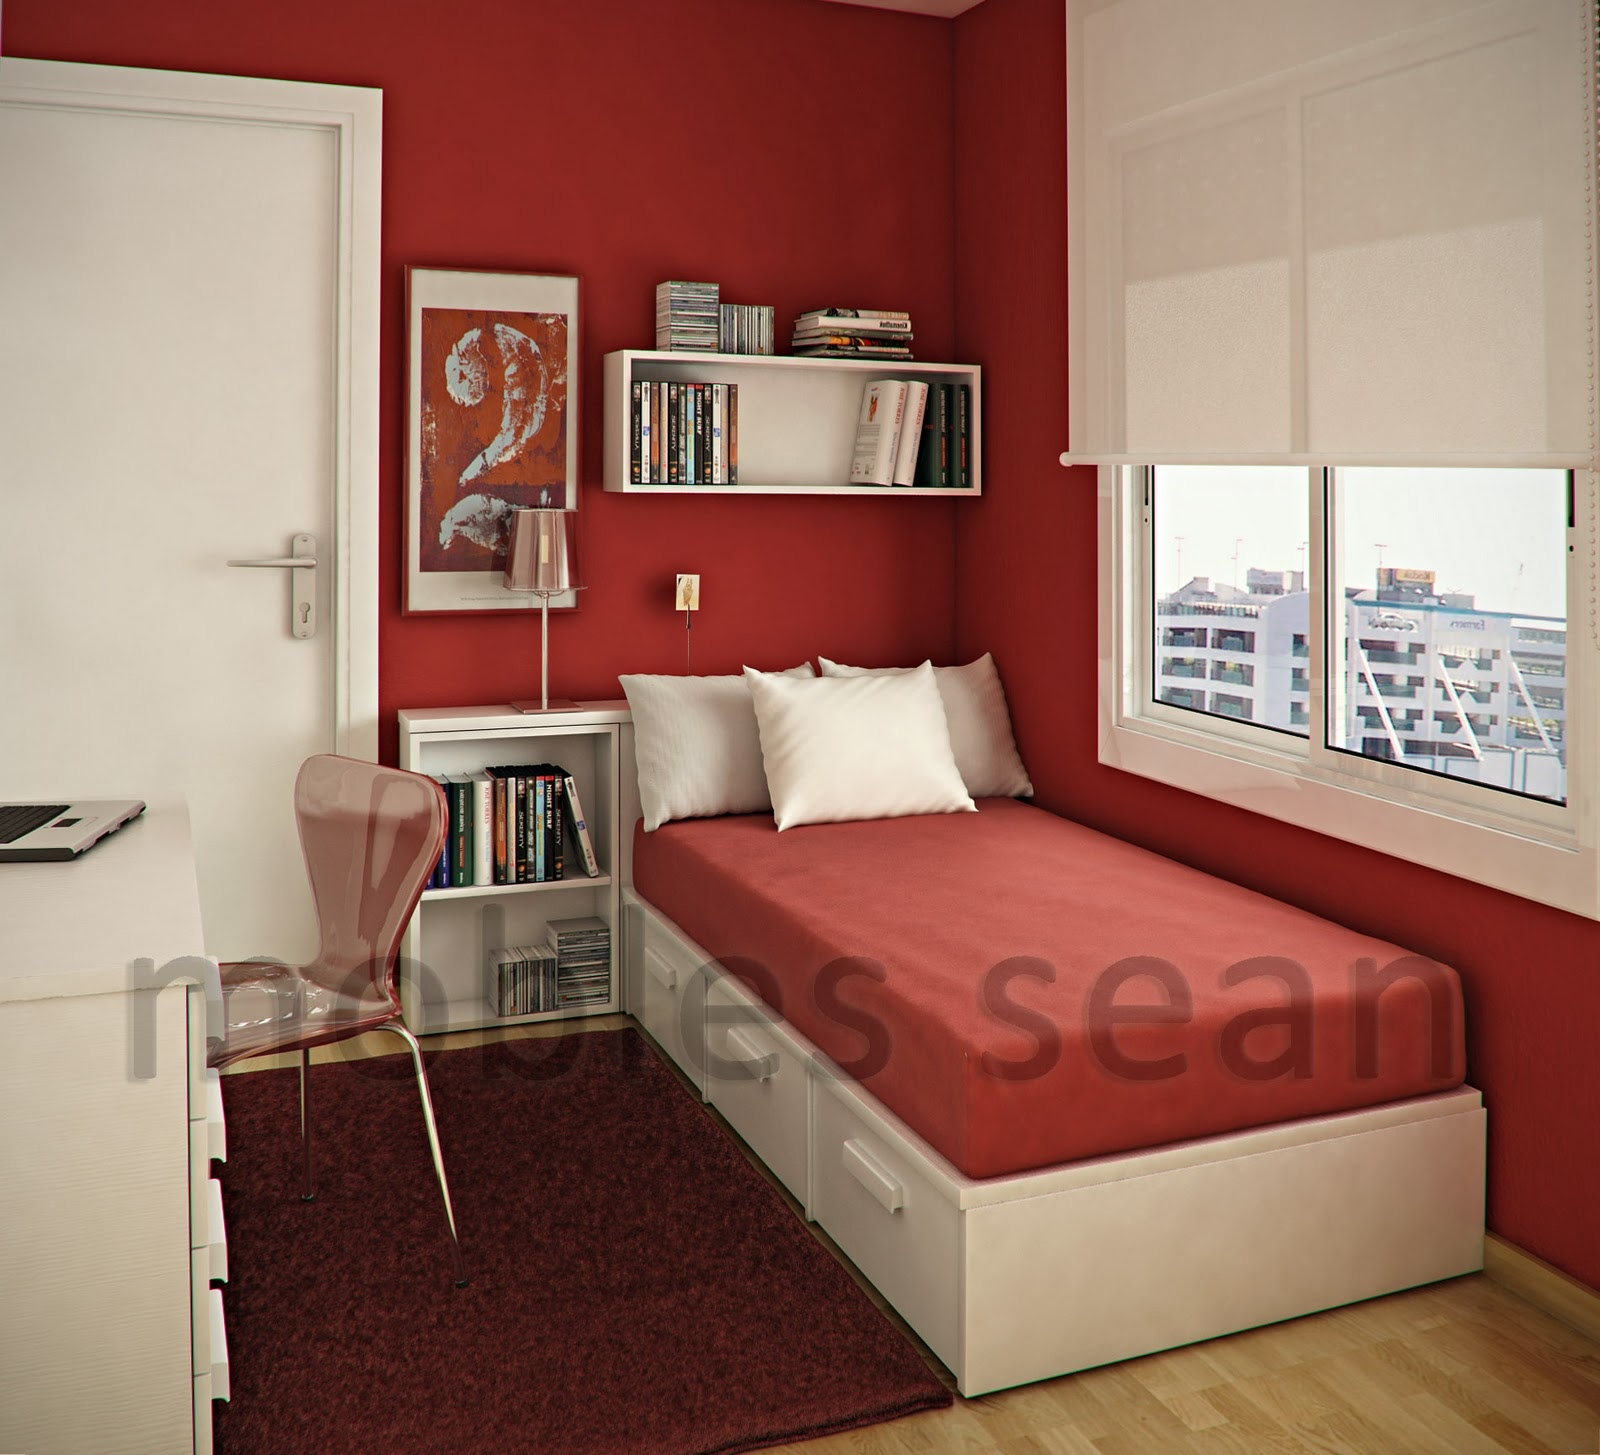 Space-Saving Designs for Small Kids Rooms on Bedroom Ideas For Small Spaces  id=56240